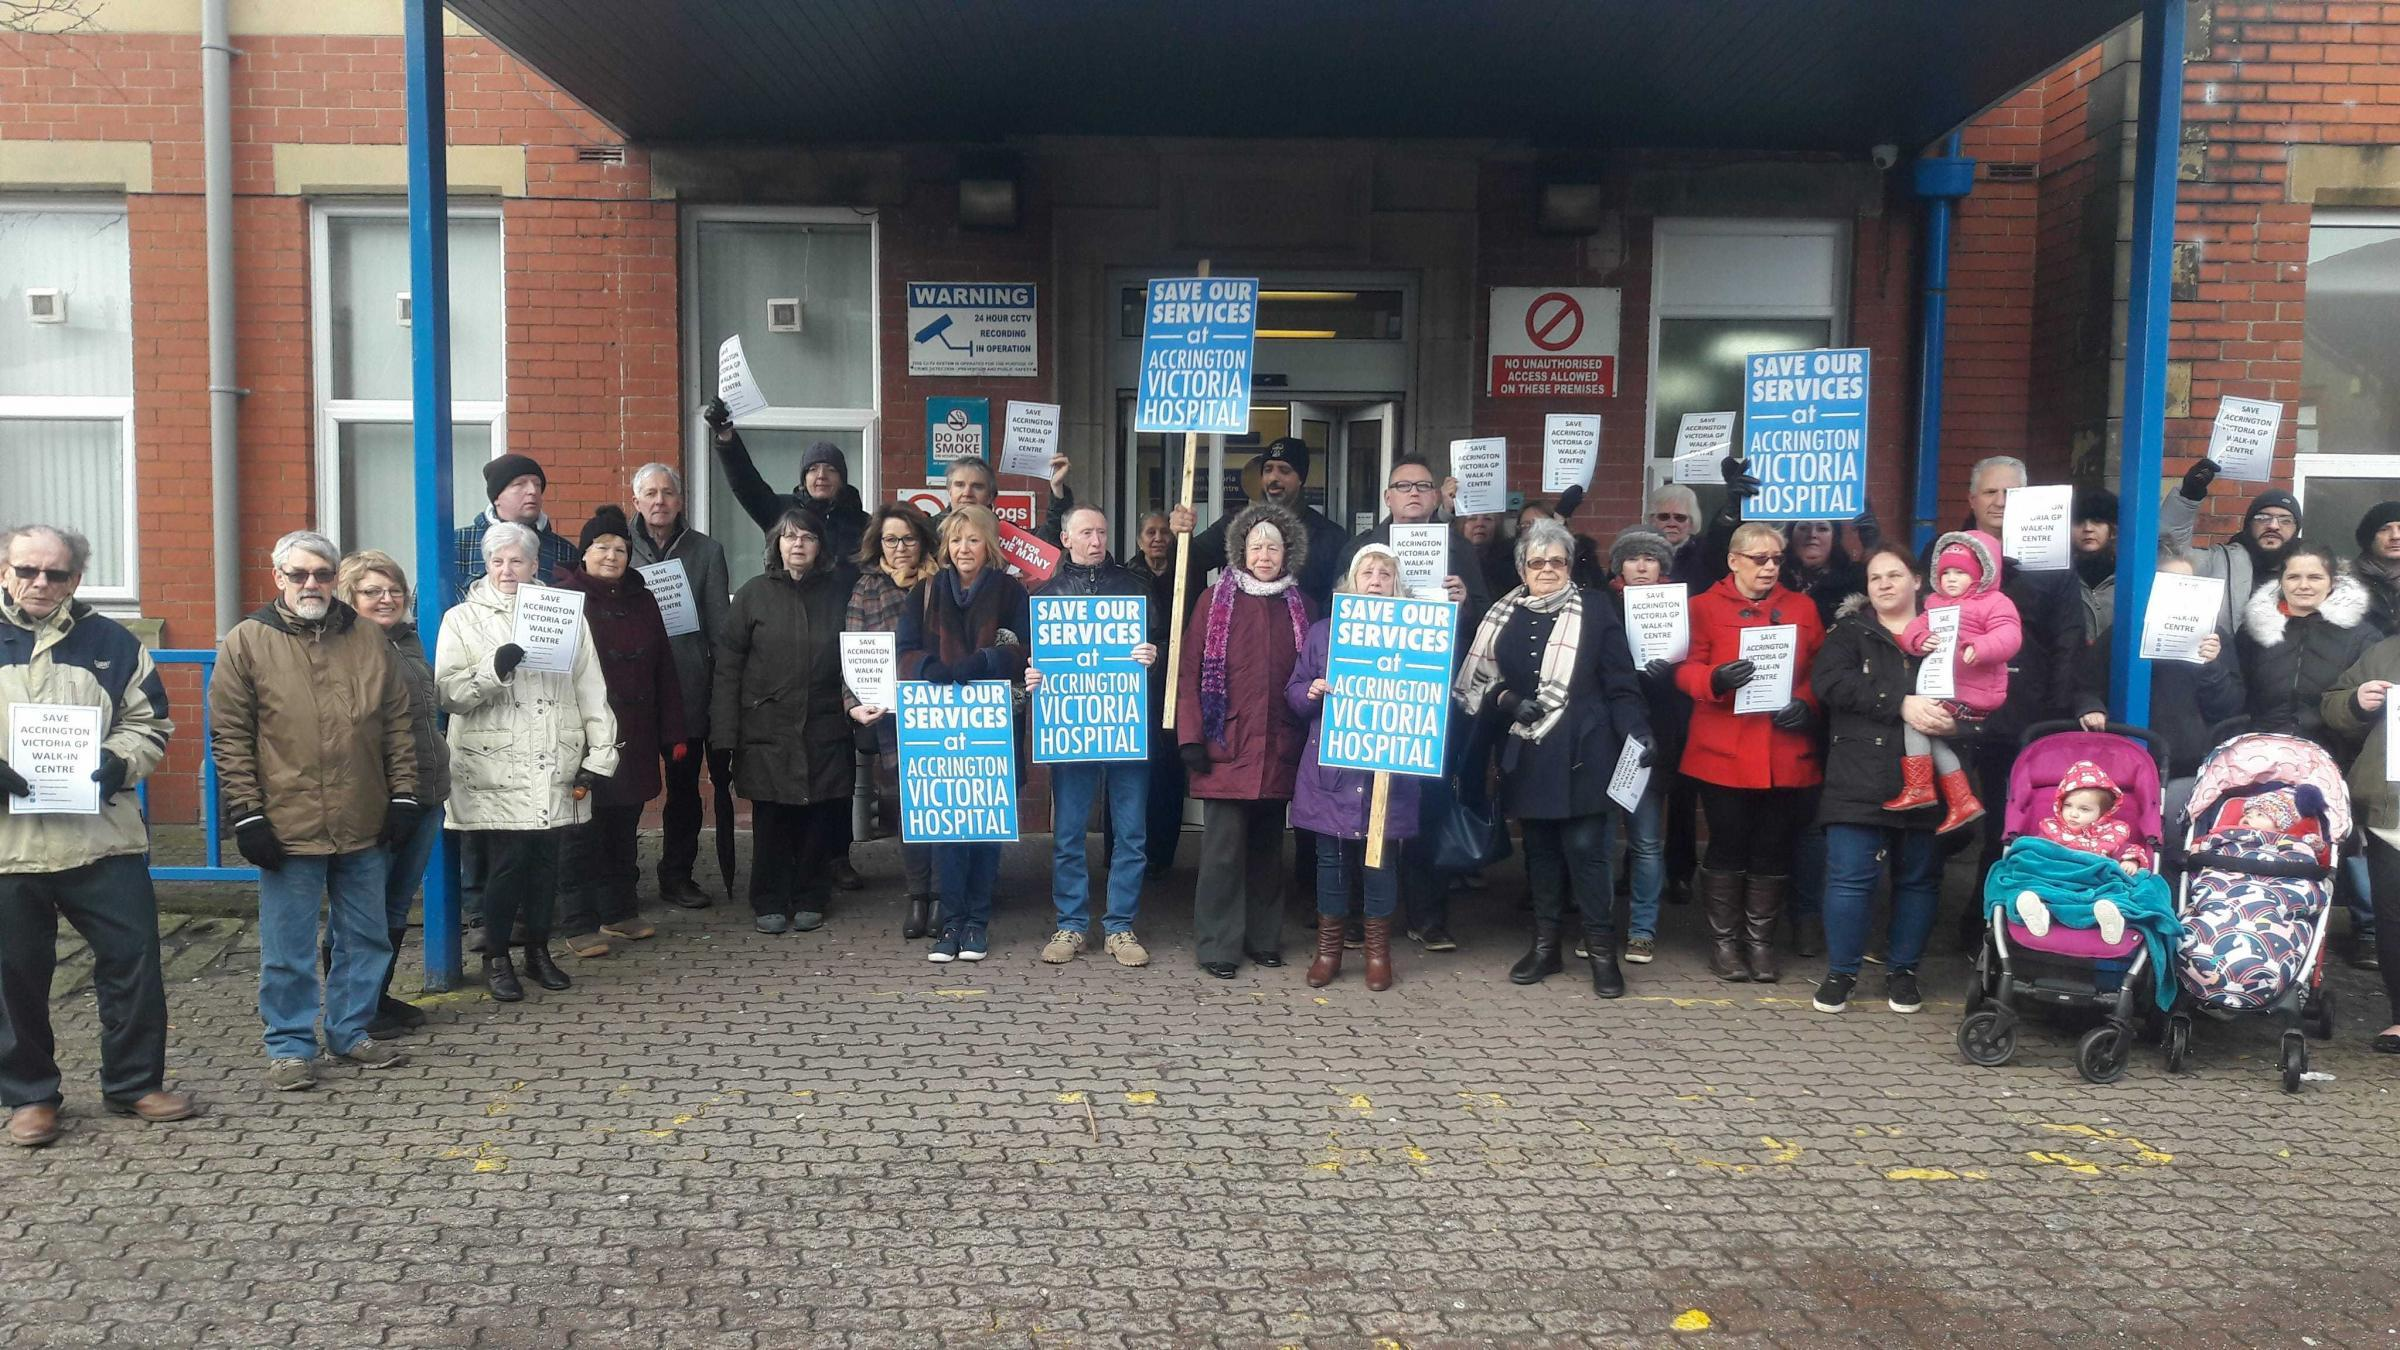 Protestors outside the walk-in centre at Accrington Victoria Community Hospital